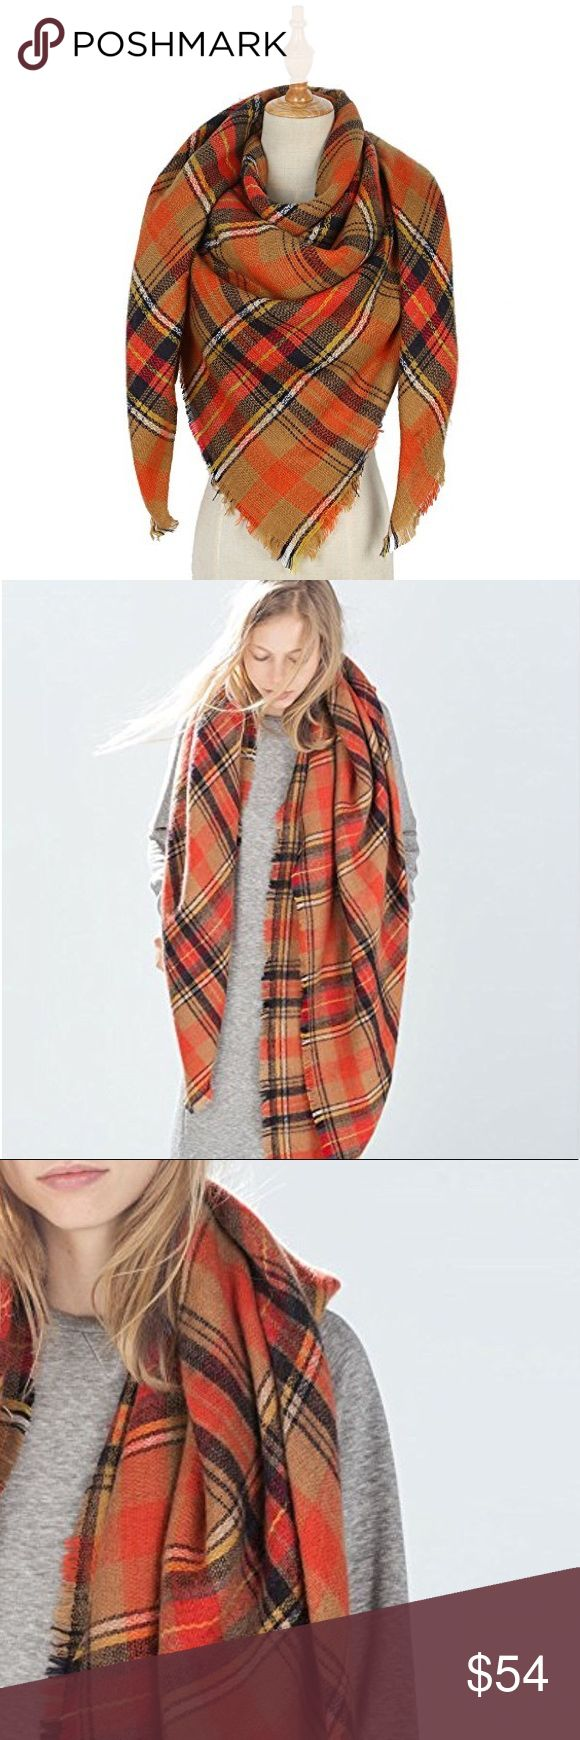 """Pumpkin Spice Ultra Plush Plaid Blanket Scarf A huge, cuddly scarf perfect for sweater weather in a neutral, pumpkin spice color palette. Wear as a wrap, shawl, scarf, or a small throw blanket.  59"""" x 59""""  ❌ Sorry, no trades.  fairlygirly fairlygirly Accessories Scarves & Wraps"""